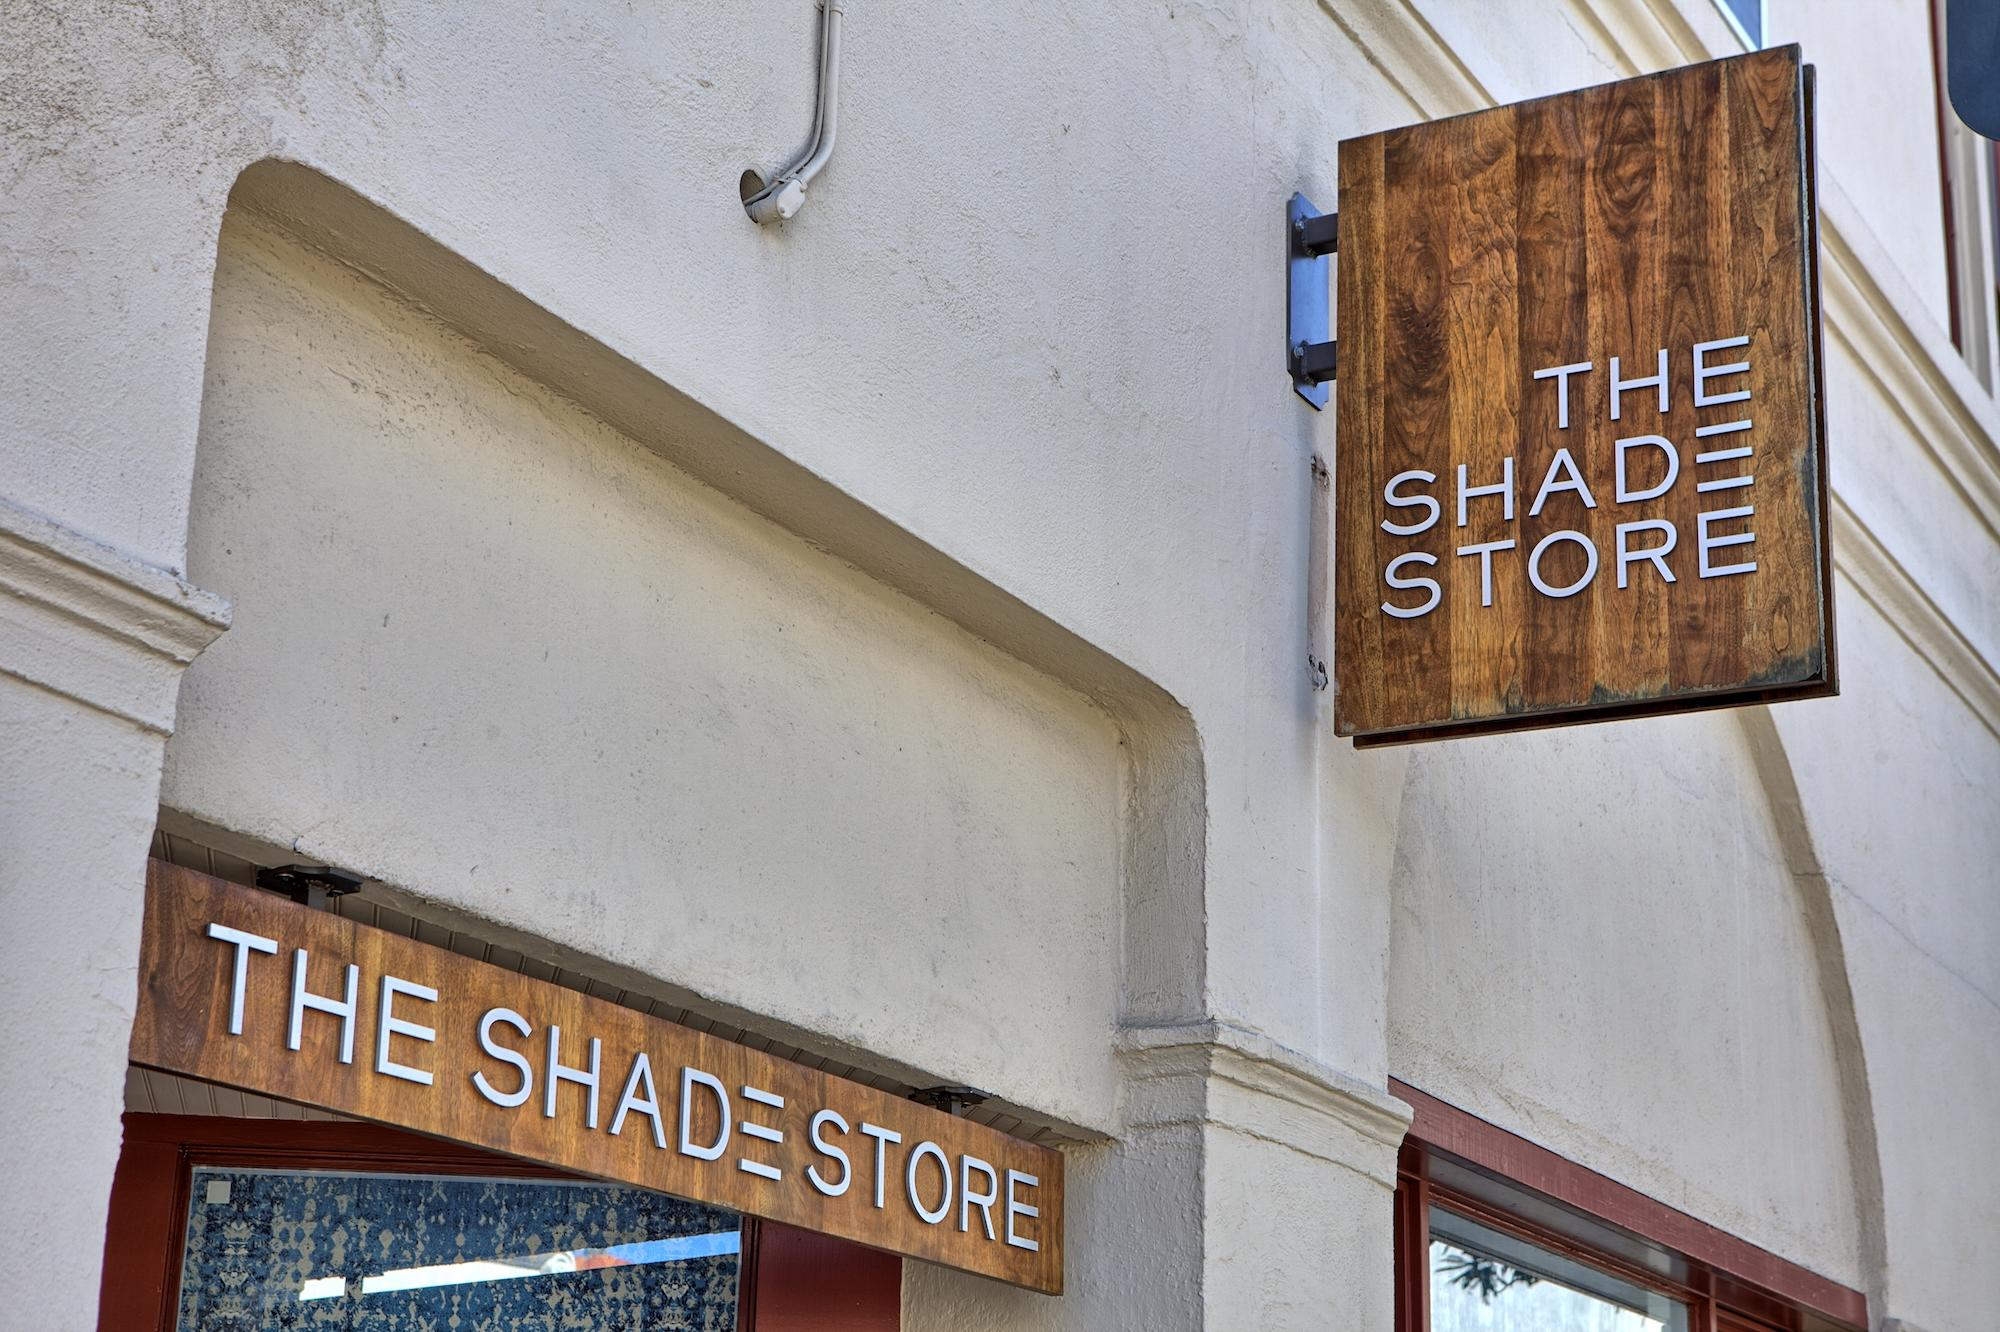 The Shade Store image 2